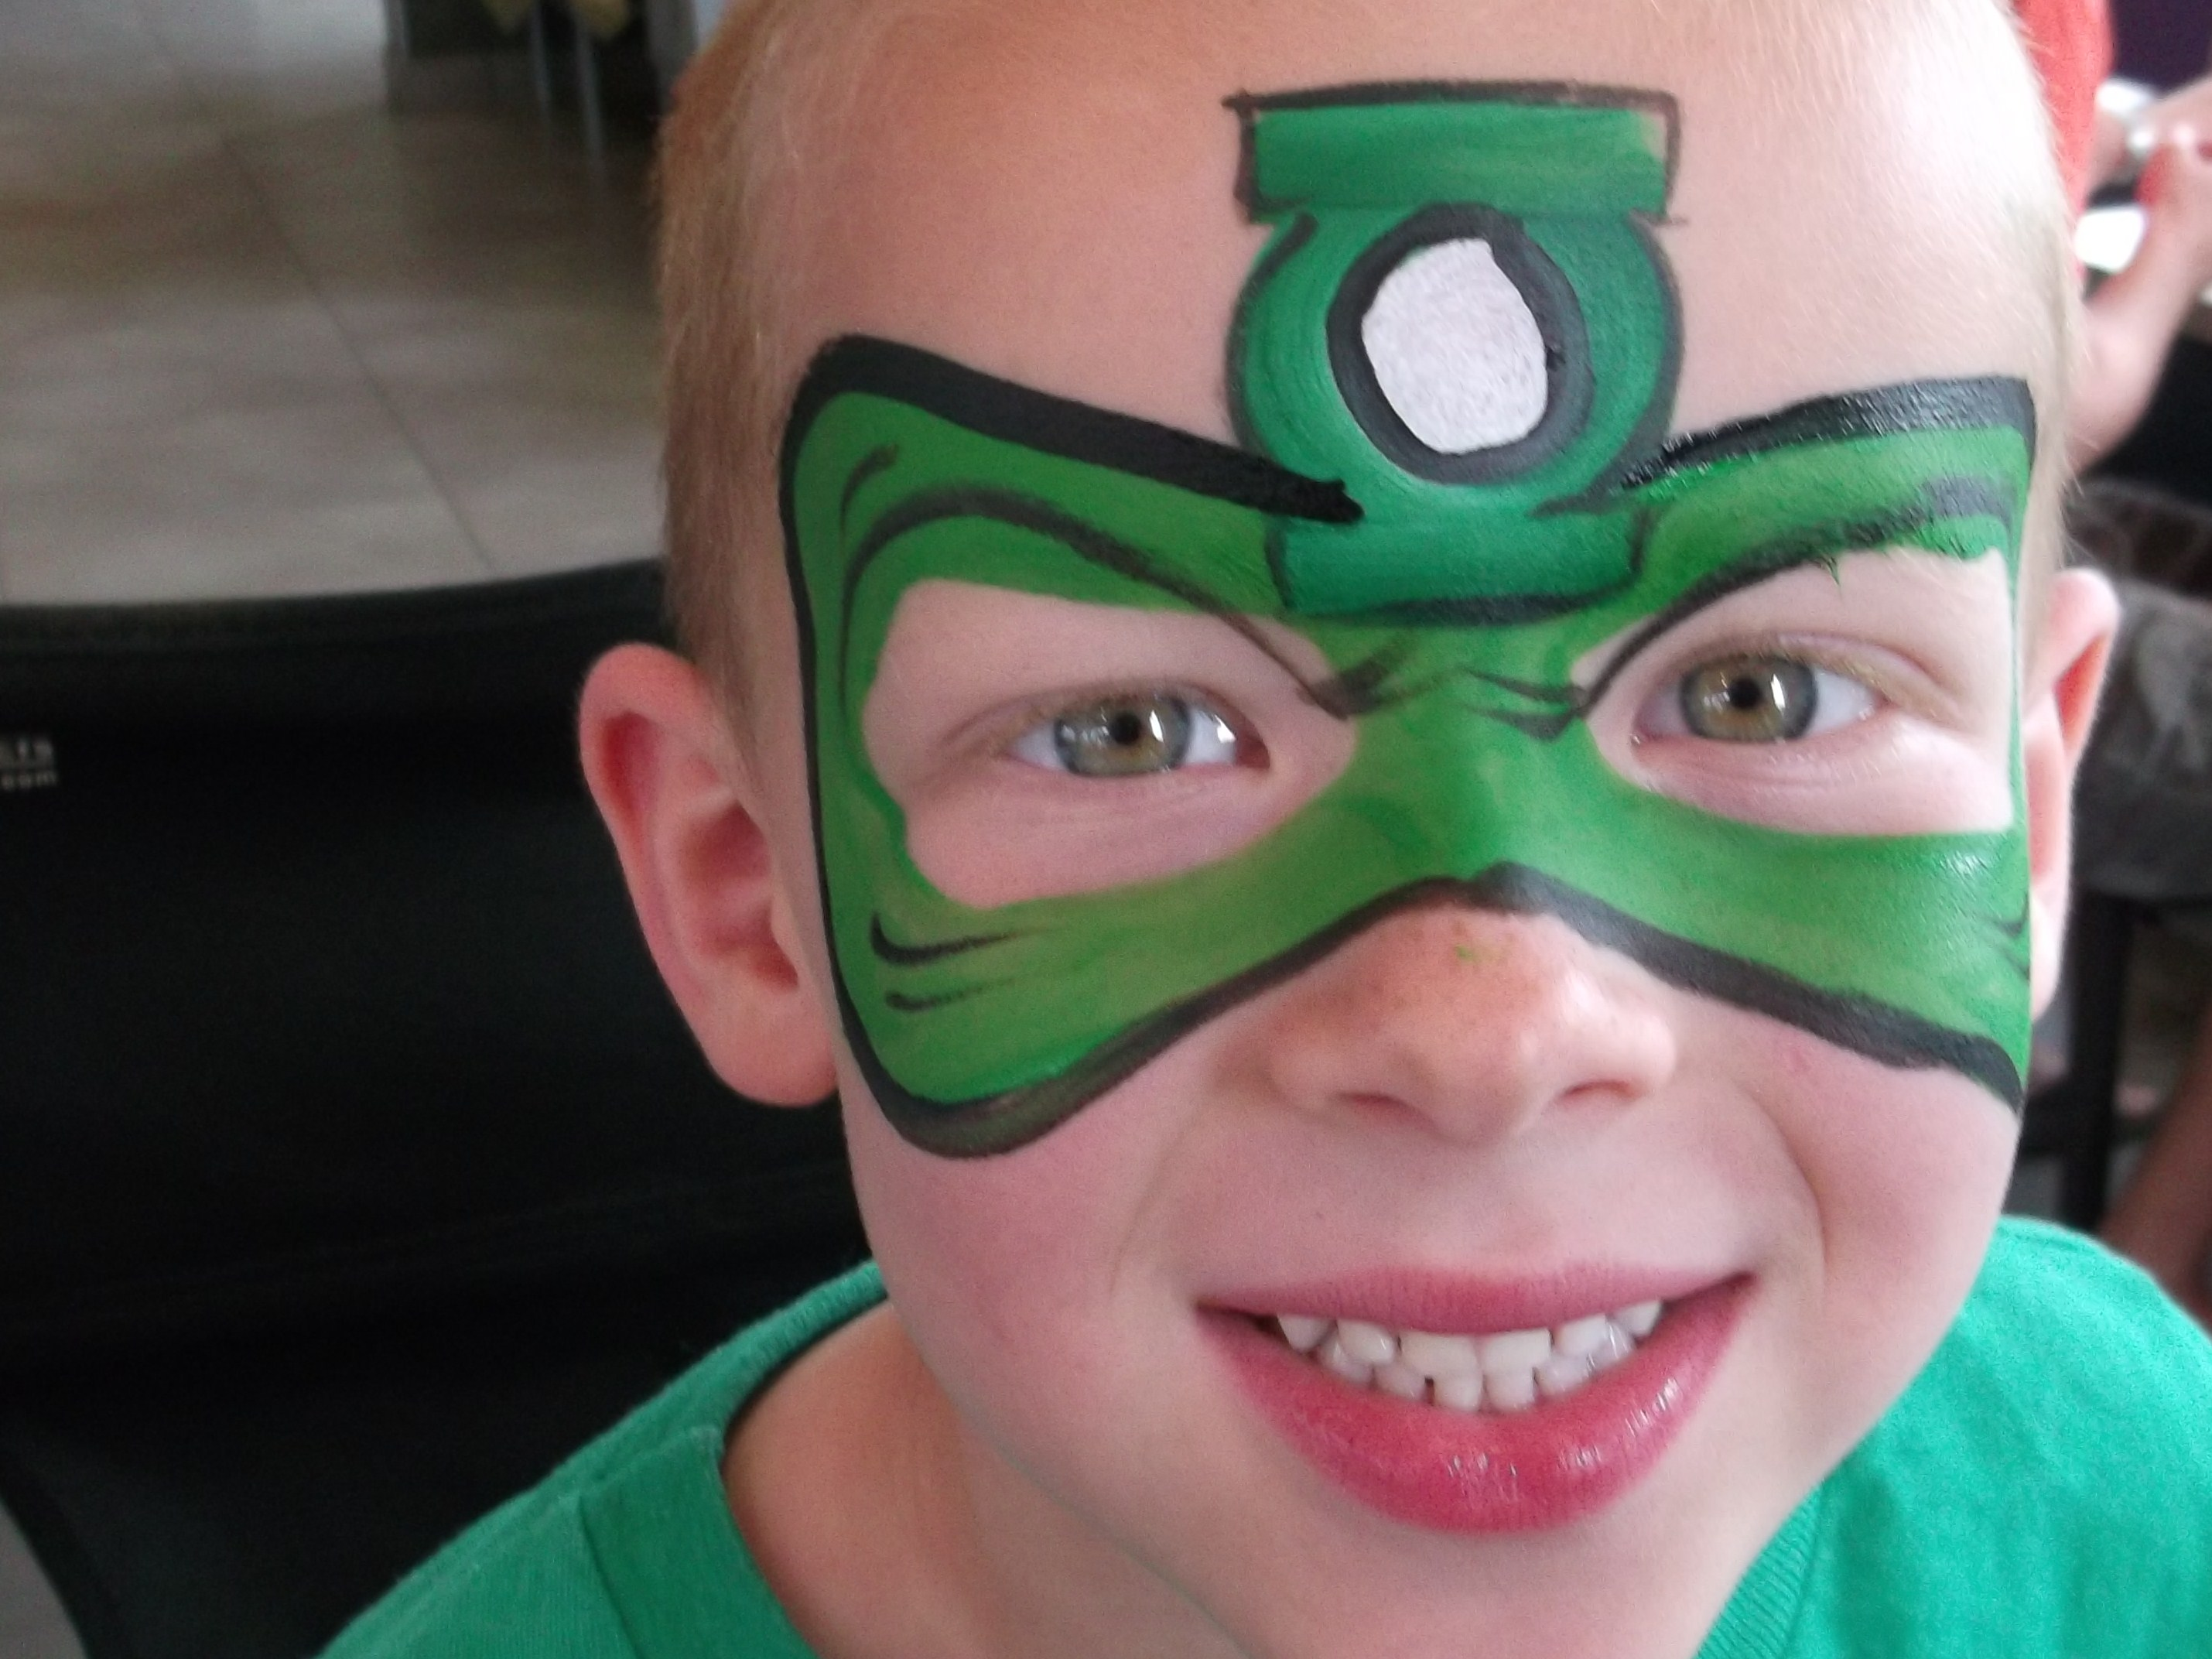 Green lantern mask face paint - photo#21